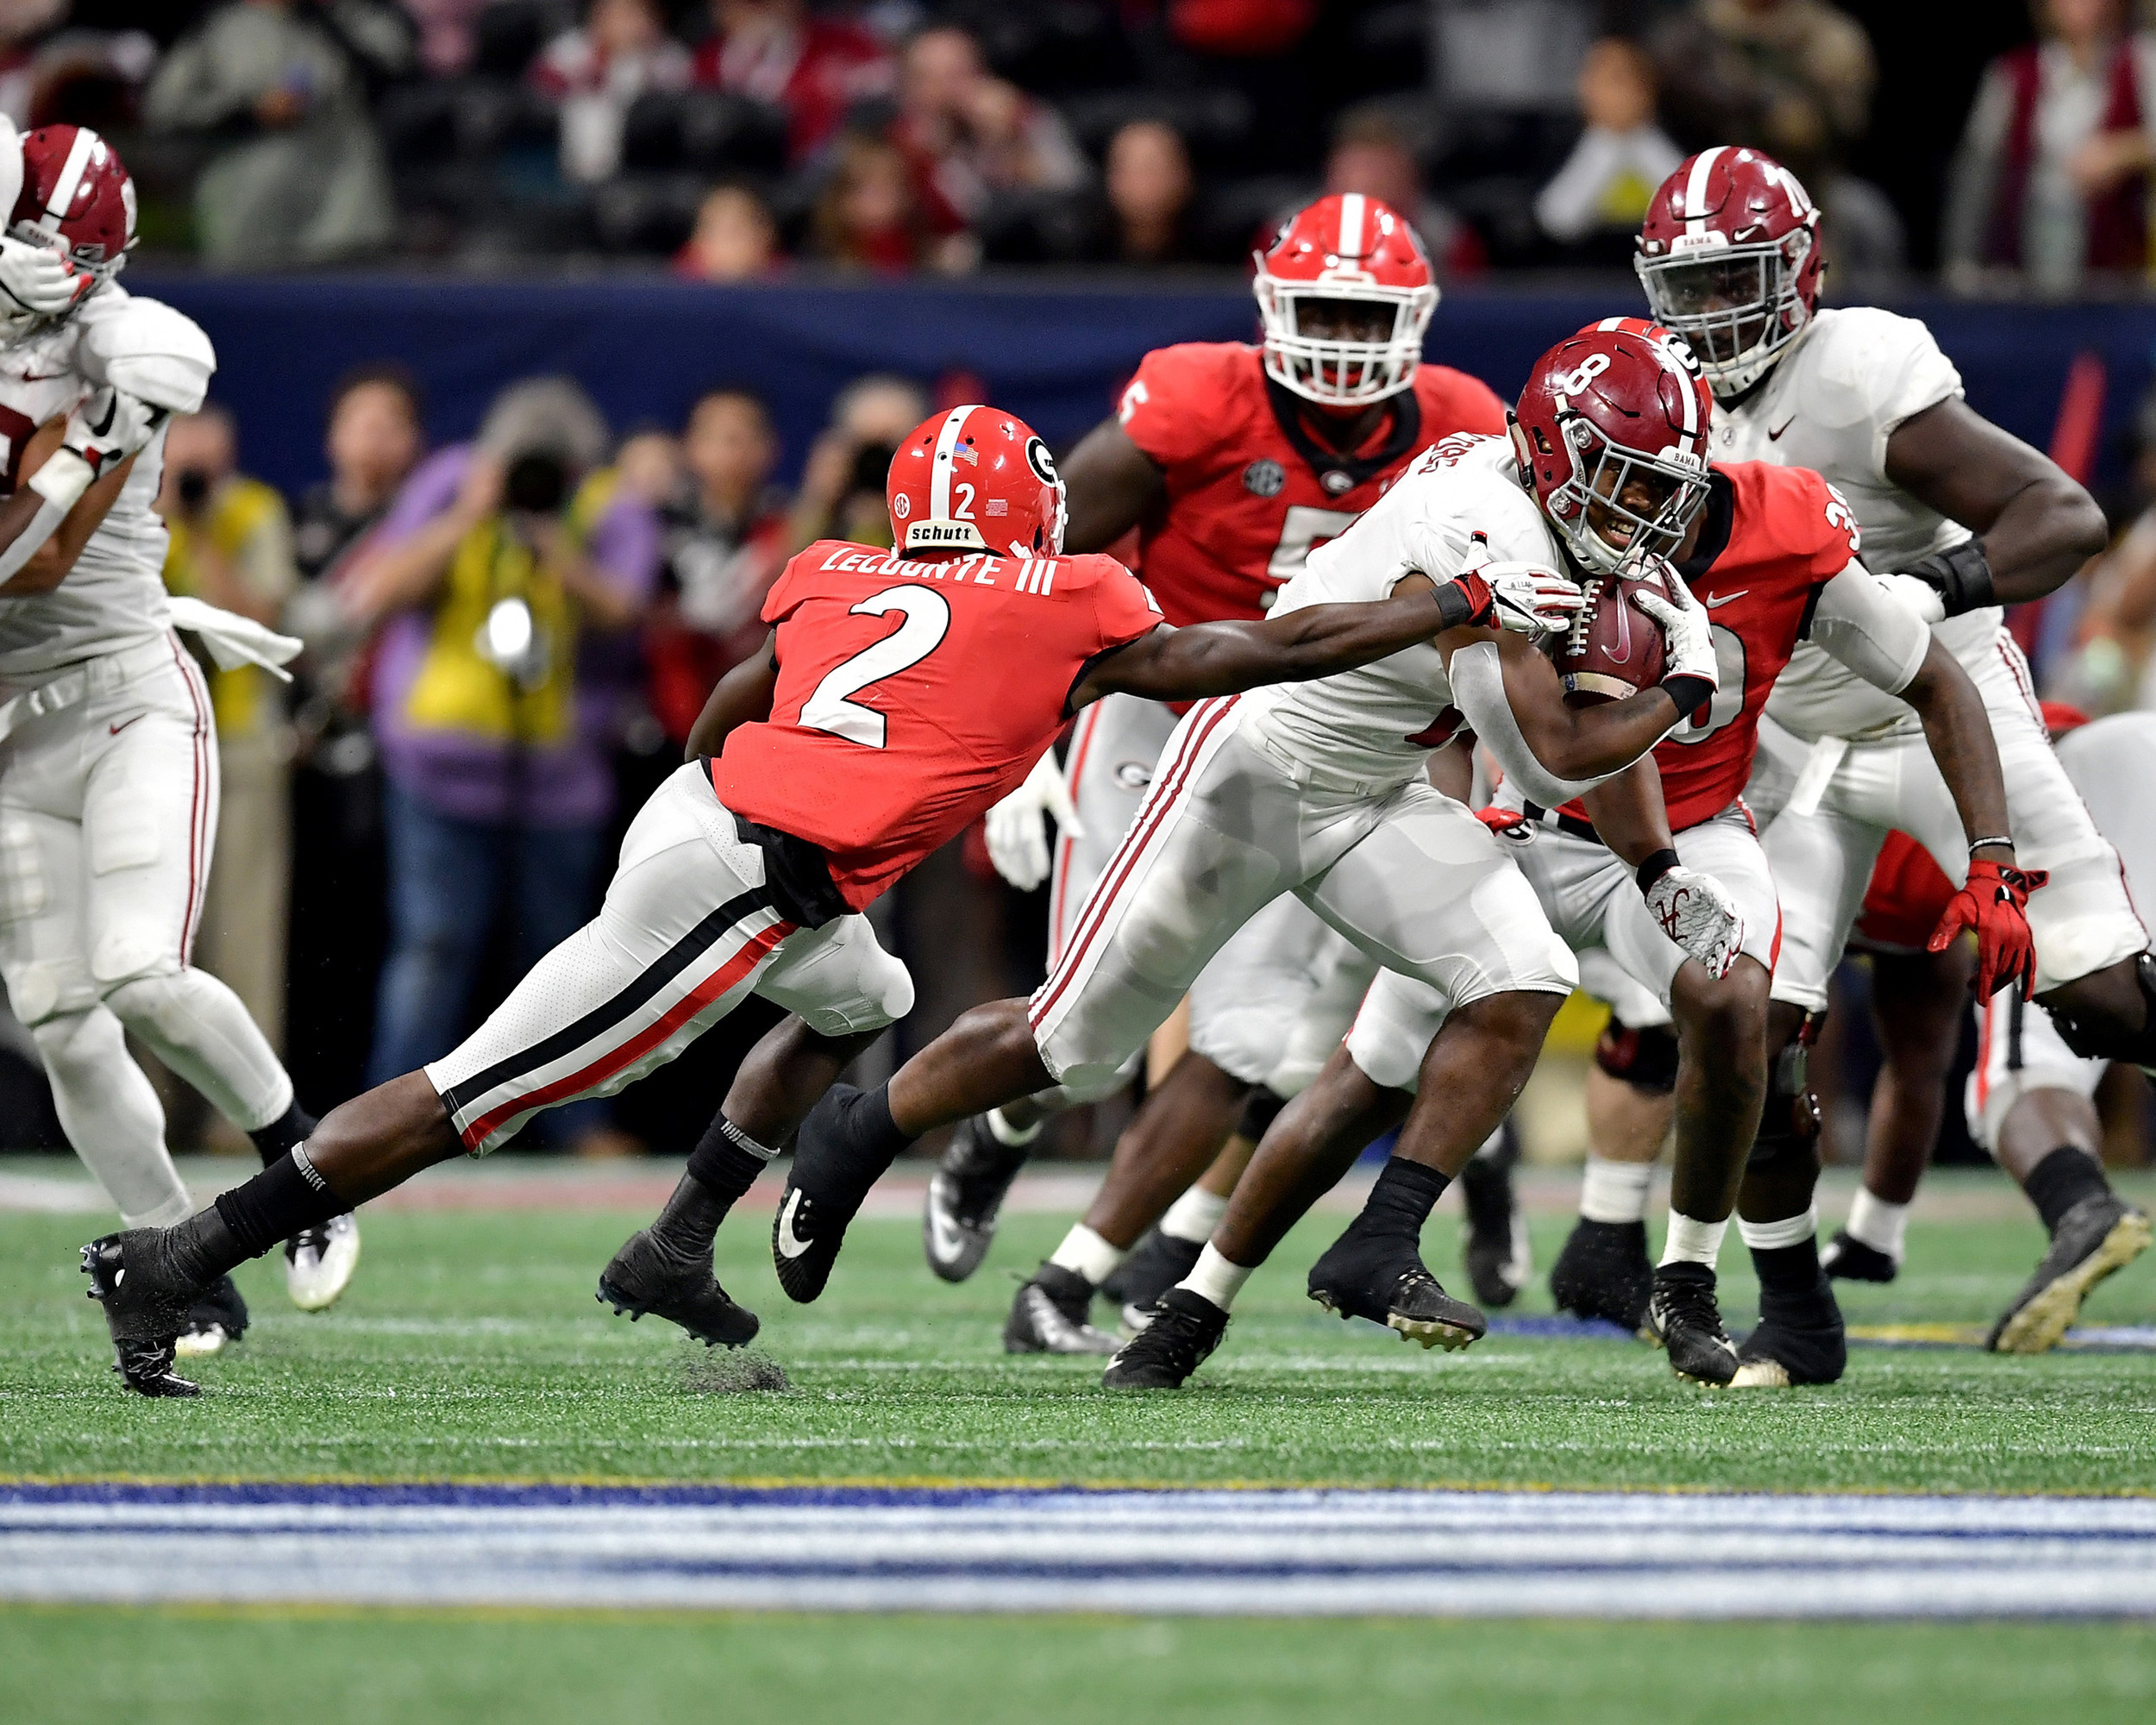 Alabama Crimson Tide running back Josh Jacobs (8) avoids a tackle during the first half of the 2018 SEC Championship football game against the Georgia Bulldogs at Mercedes-Benz Stadium in Atlanta, Ga., on Dec. 1, 2018. Alabama wins 35-28. (Photo by Lee Walls)